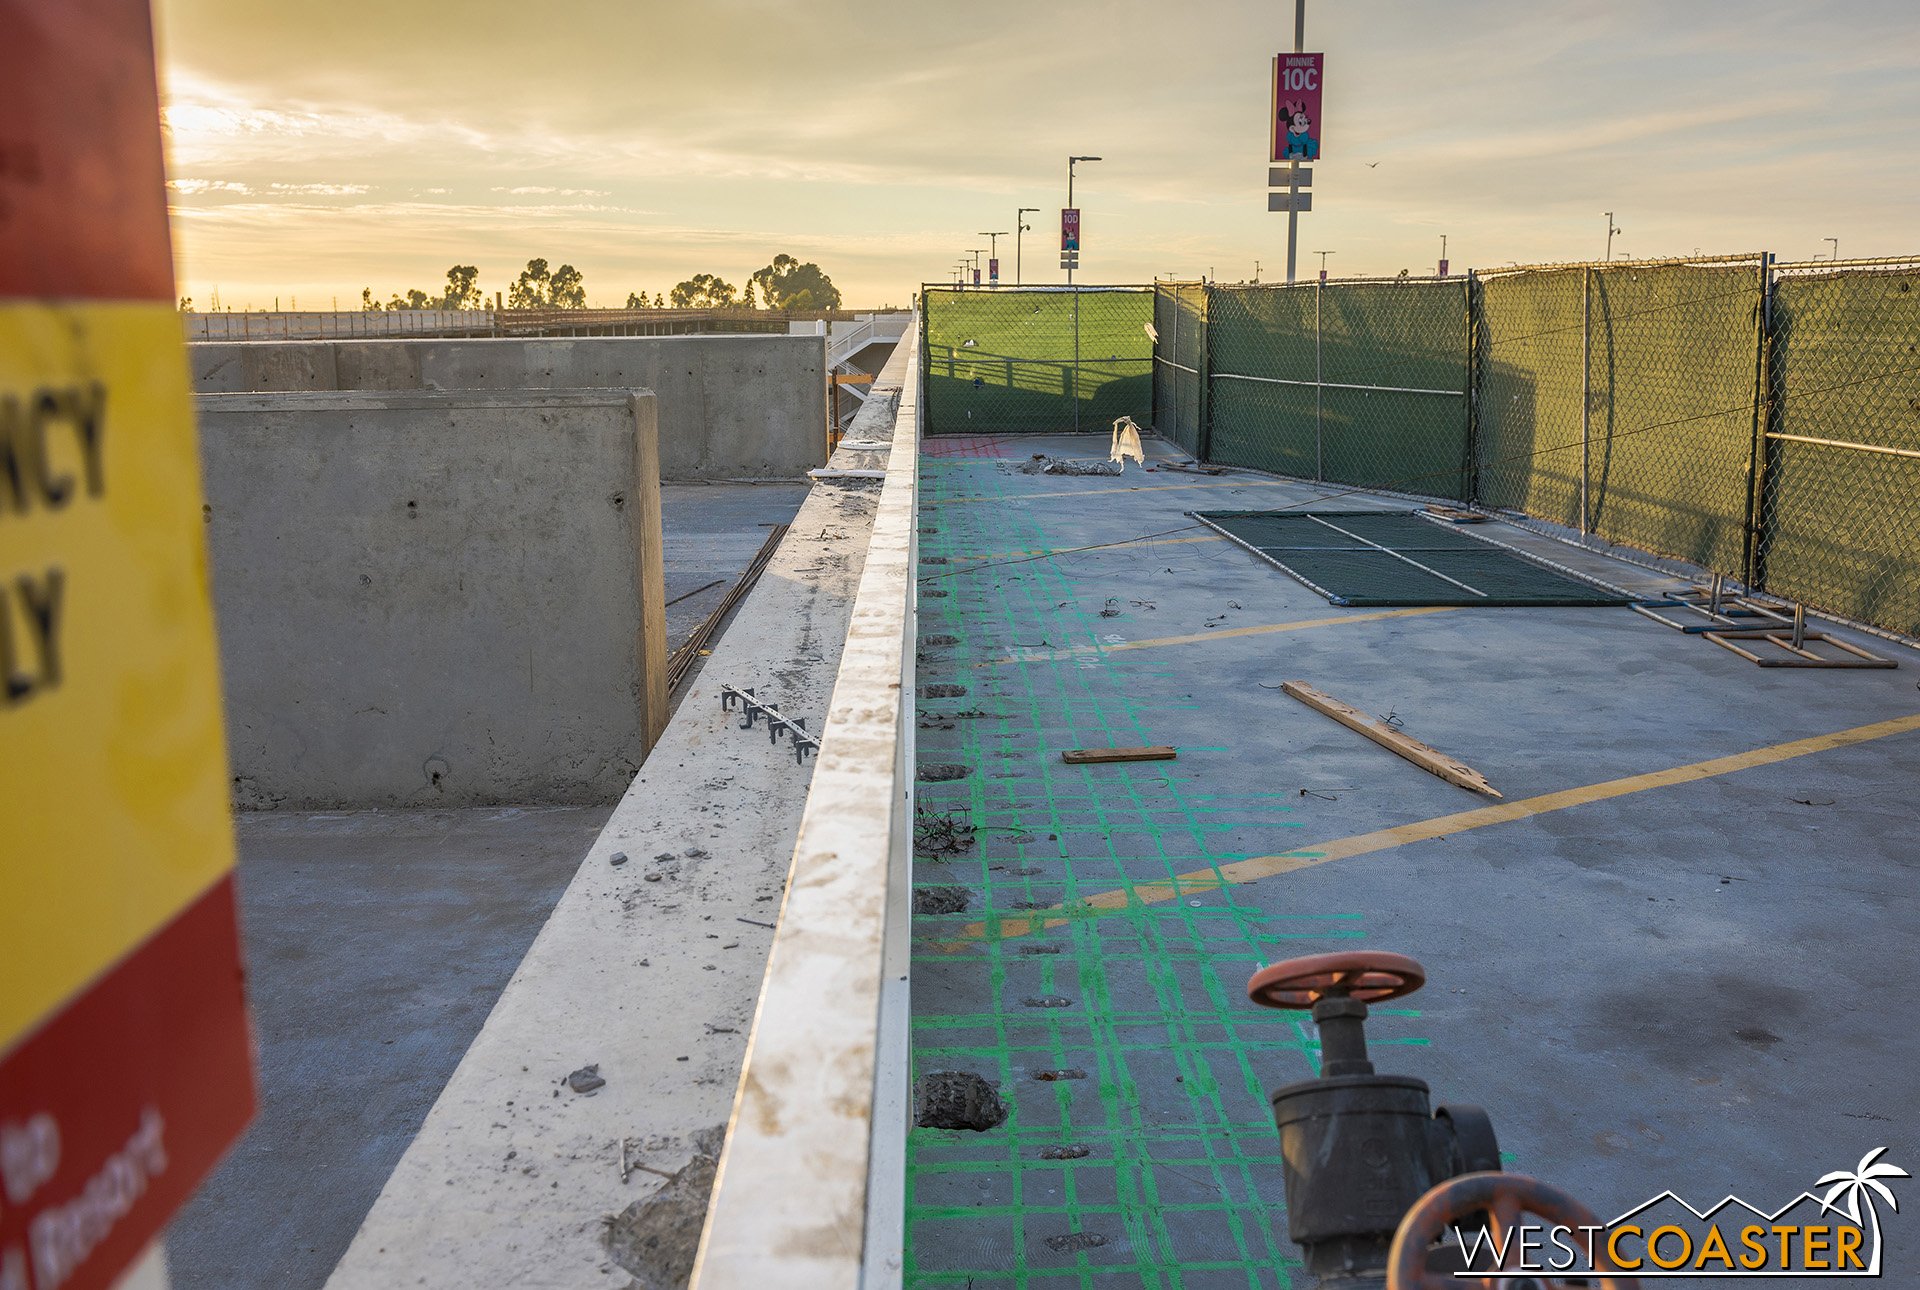 Over here, the rebar within the existing structure has been x-rayed and traced out so that when they cut out the existing parking structure wall and cut into the deck, they know just what reinforcement is being impacted.